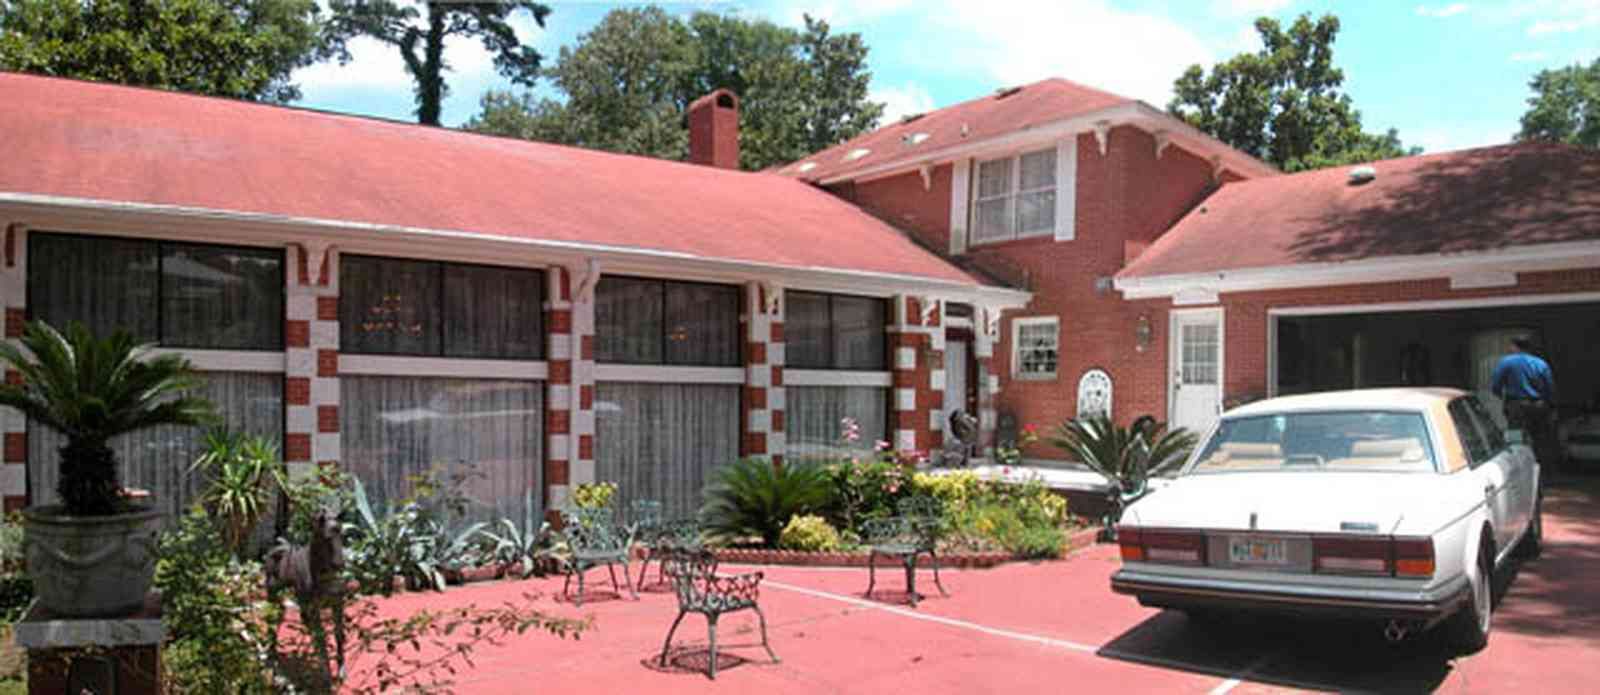 Scenic-Highway:-3780-Scenic-Ridge-Drive_02a.jpg:  red brick house, colonial style architecture, rolls royce, patio furniture, sego palm tree, red concrete